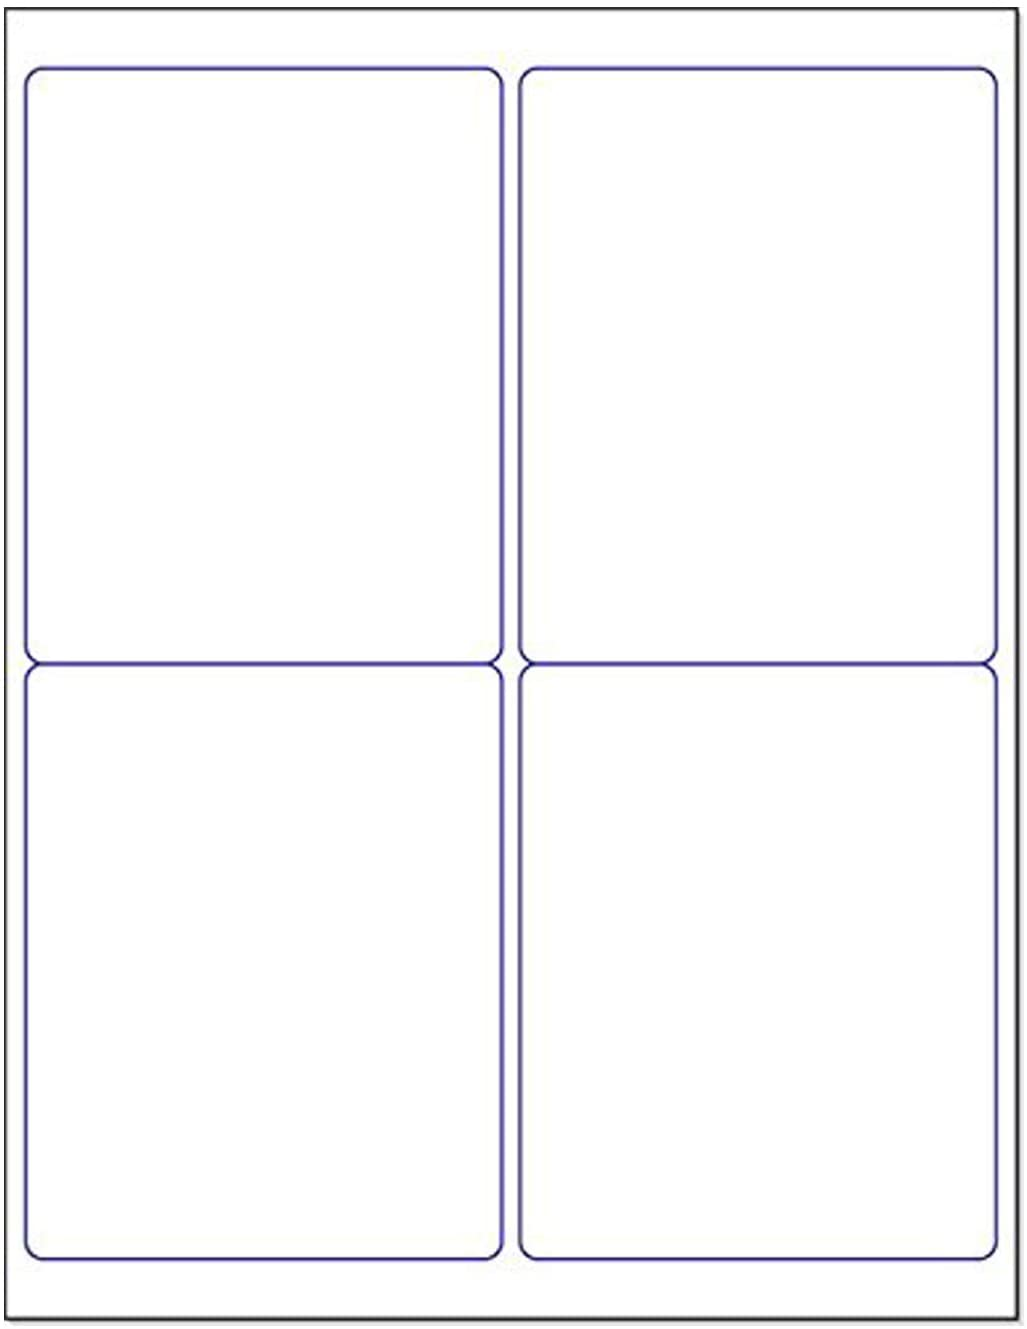 "Blank White Permanent Adhesive Labels for Laser/Ink Jet Printer (4 x 5"" - 4 Per Page 